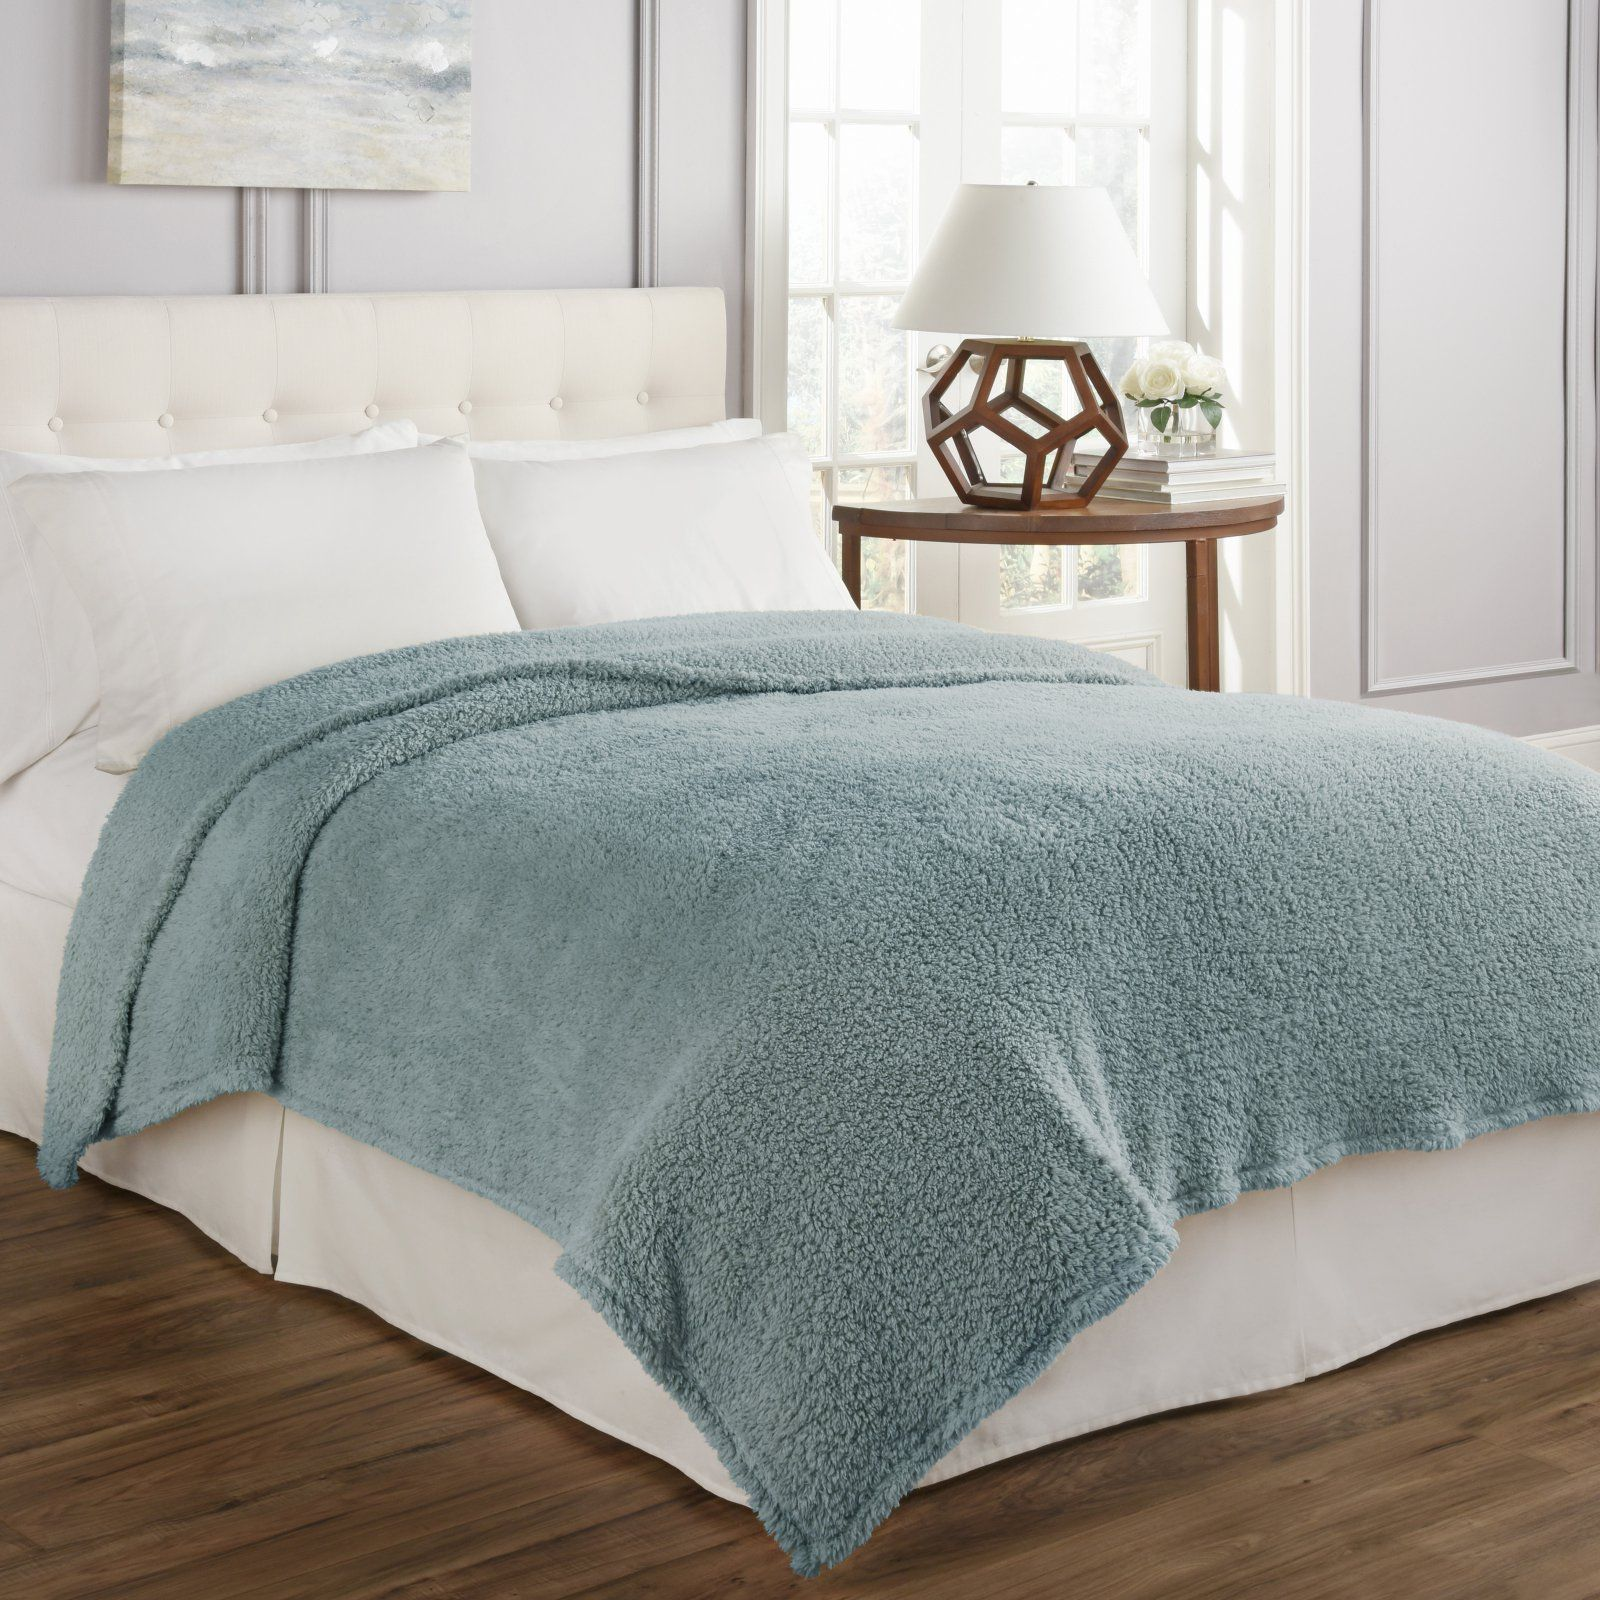 Cosette Ultra Soft Blanket By Beautyrest Robins Egg Blue In 2019